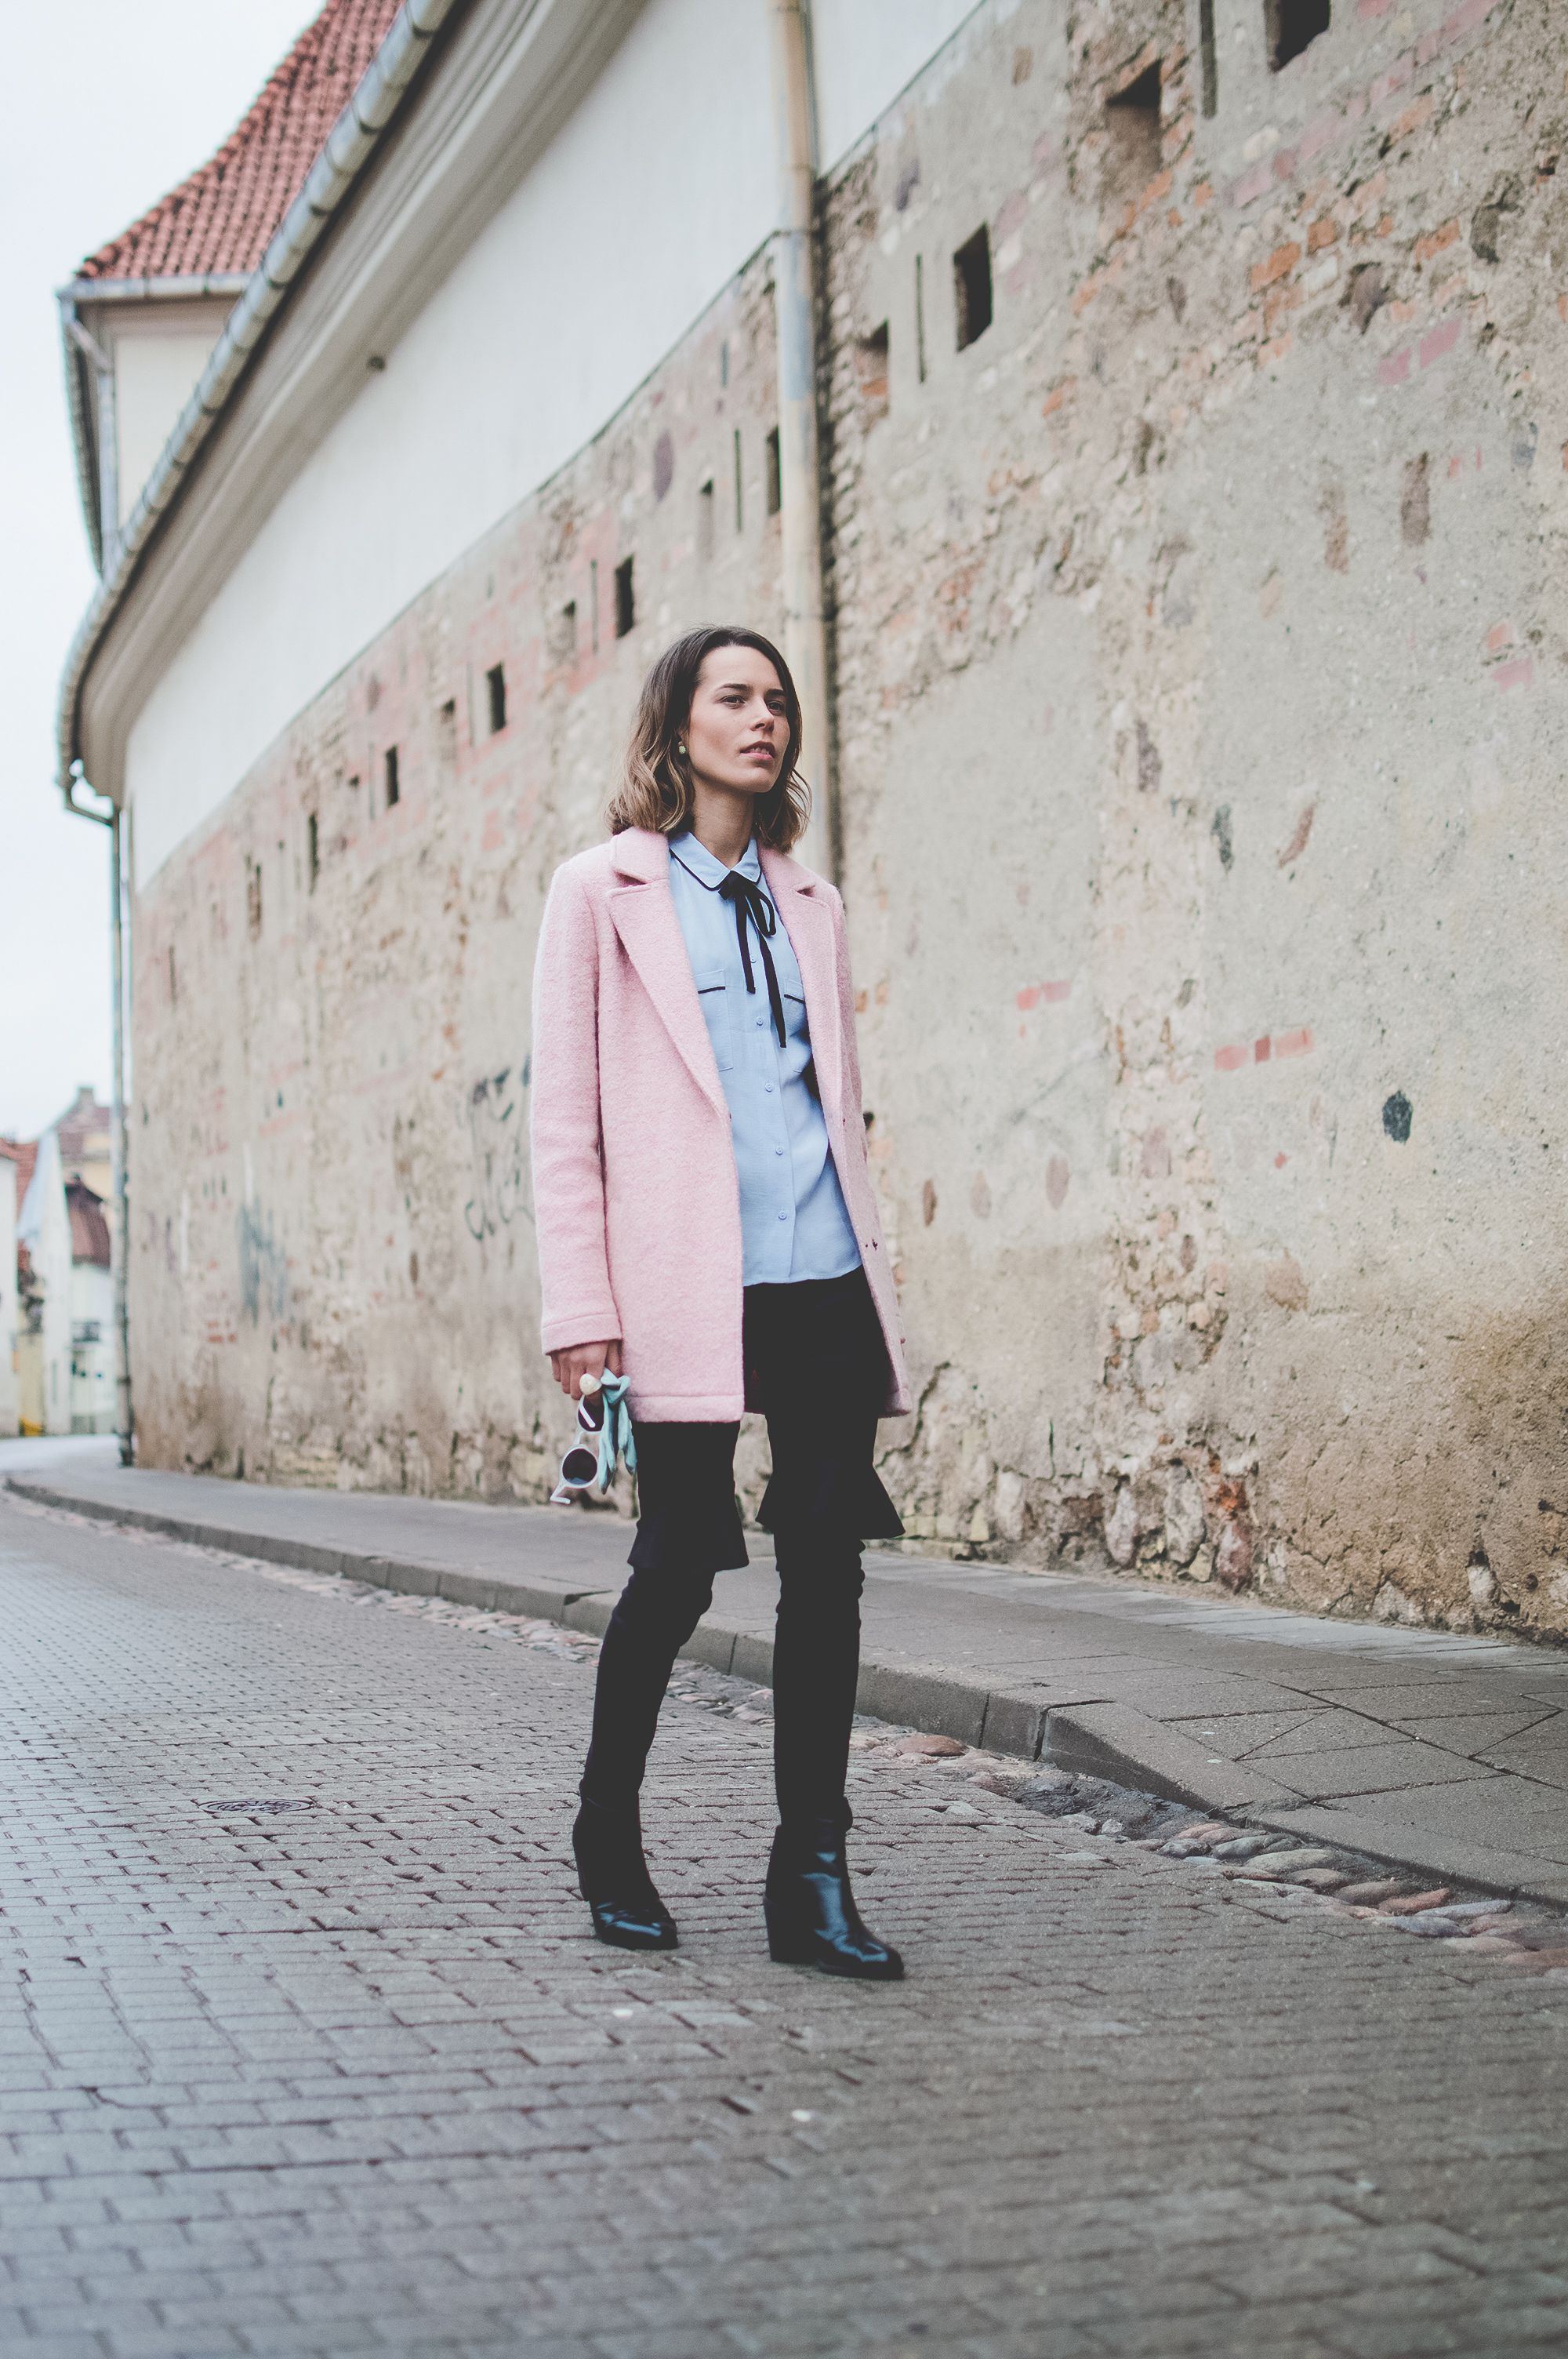 Pink Coat OOTD on www.donttellanyone.net/blog! Marks&Spencer, blue, candy pop, pastel colors, pastel outfit, style, fashion.